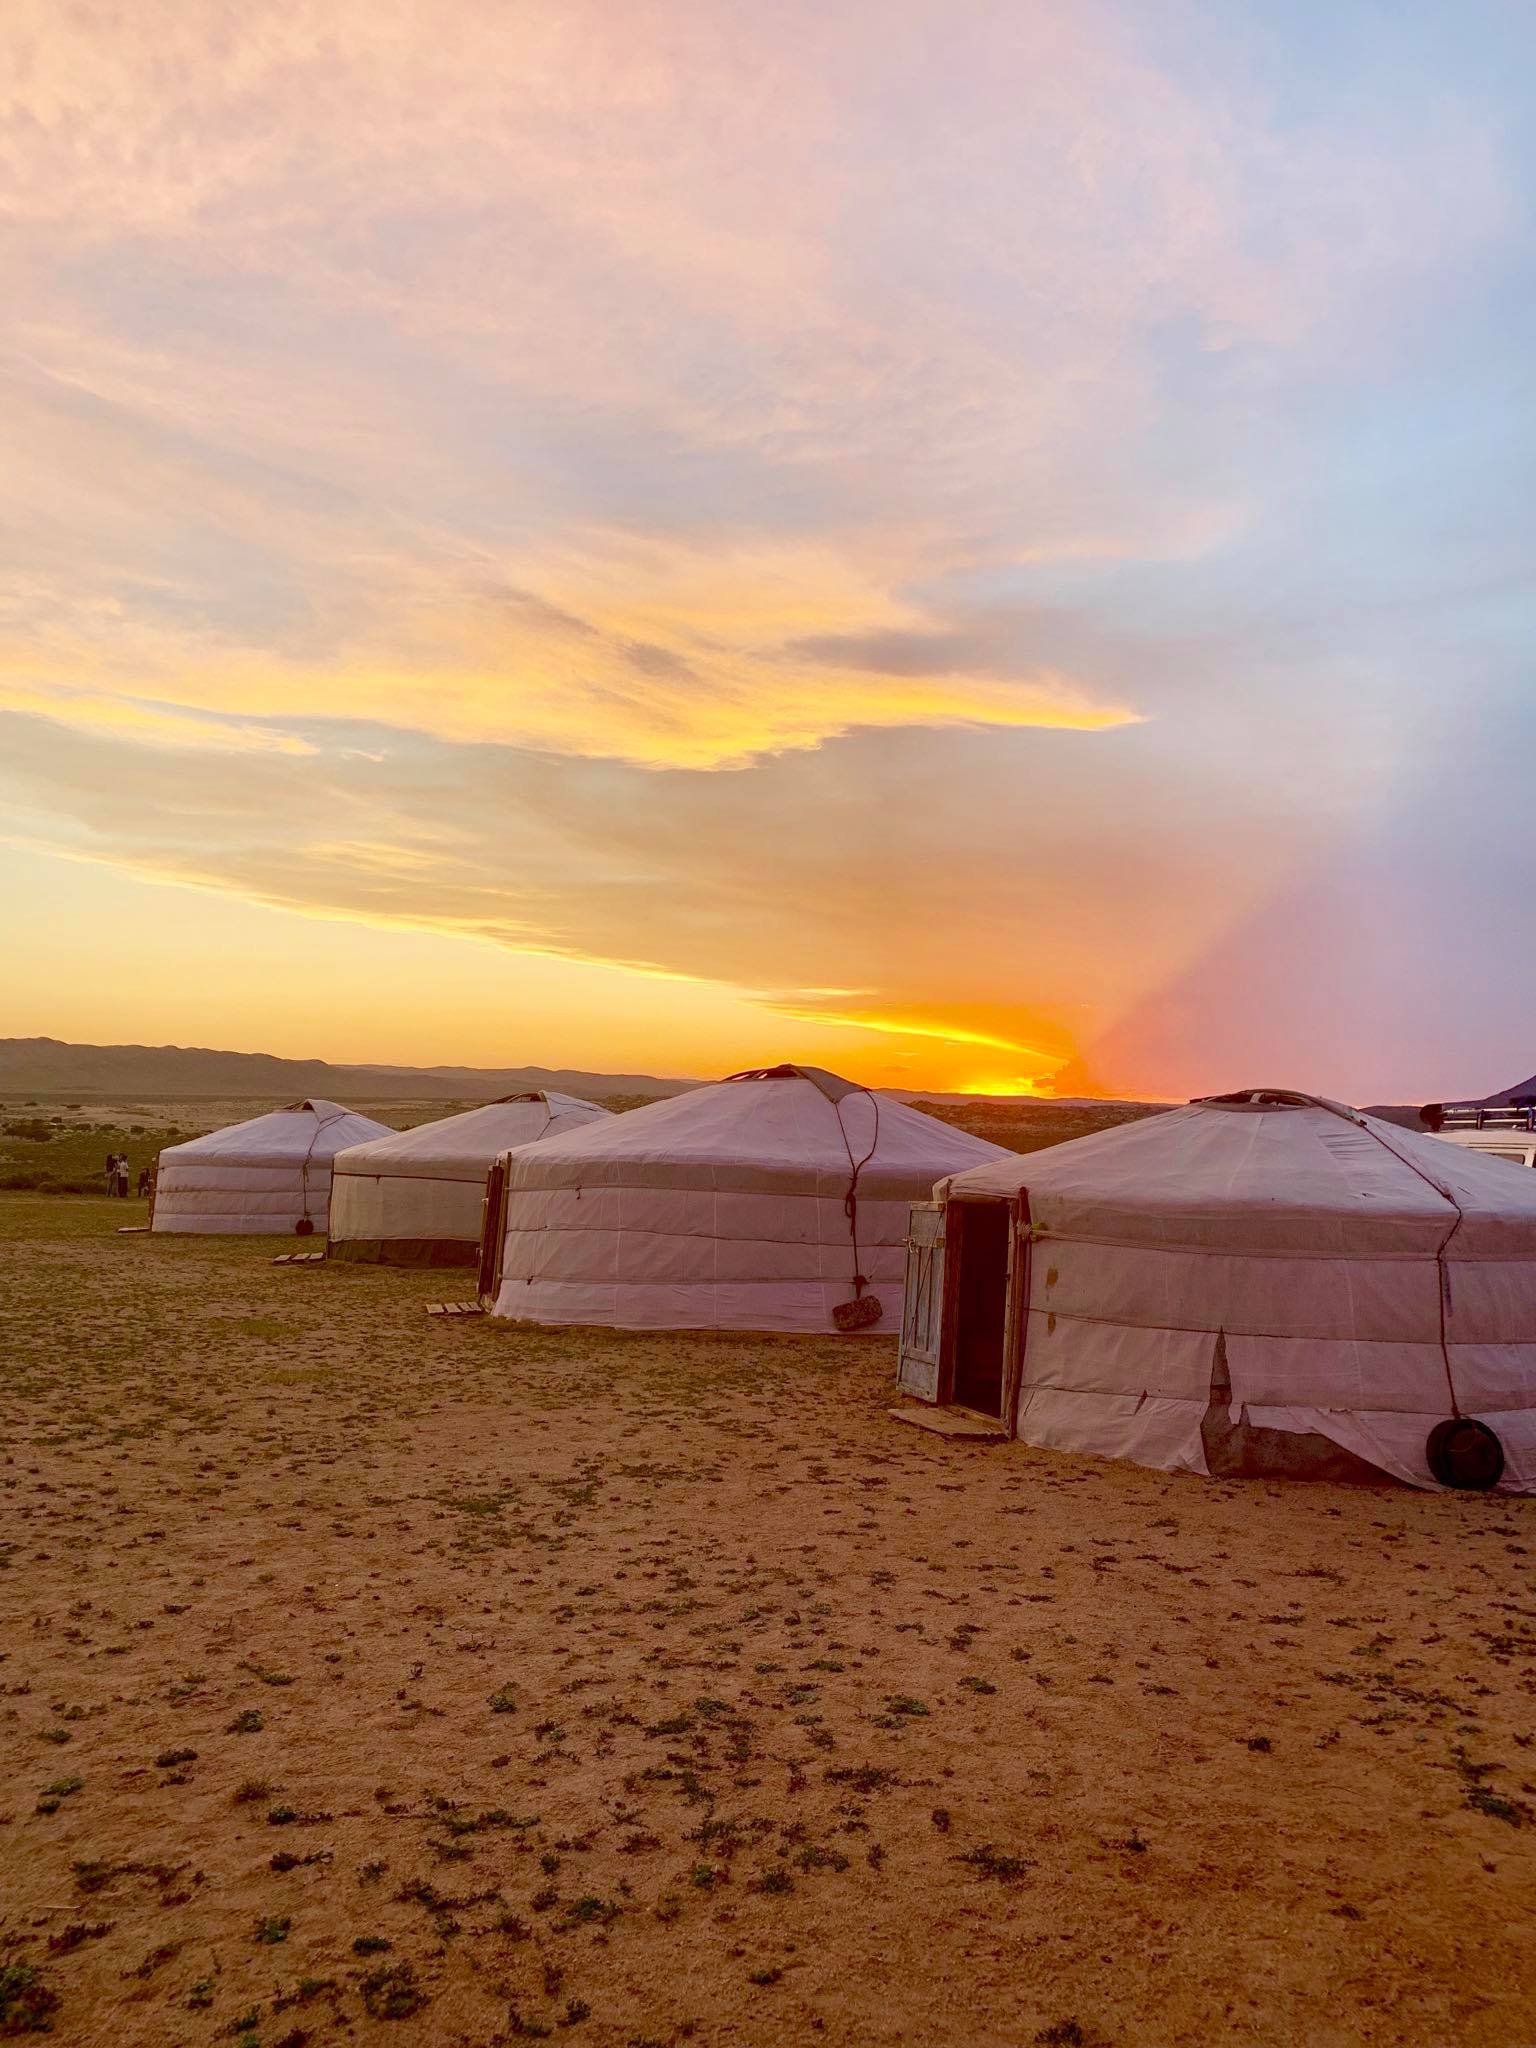 Kach Solo Travels in 2019 My place for 3 days here in Mongolia17.jpg